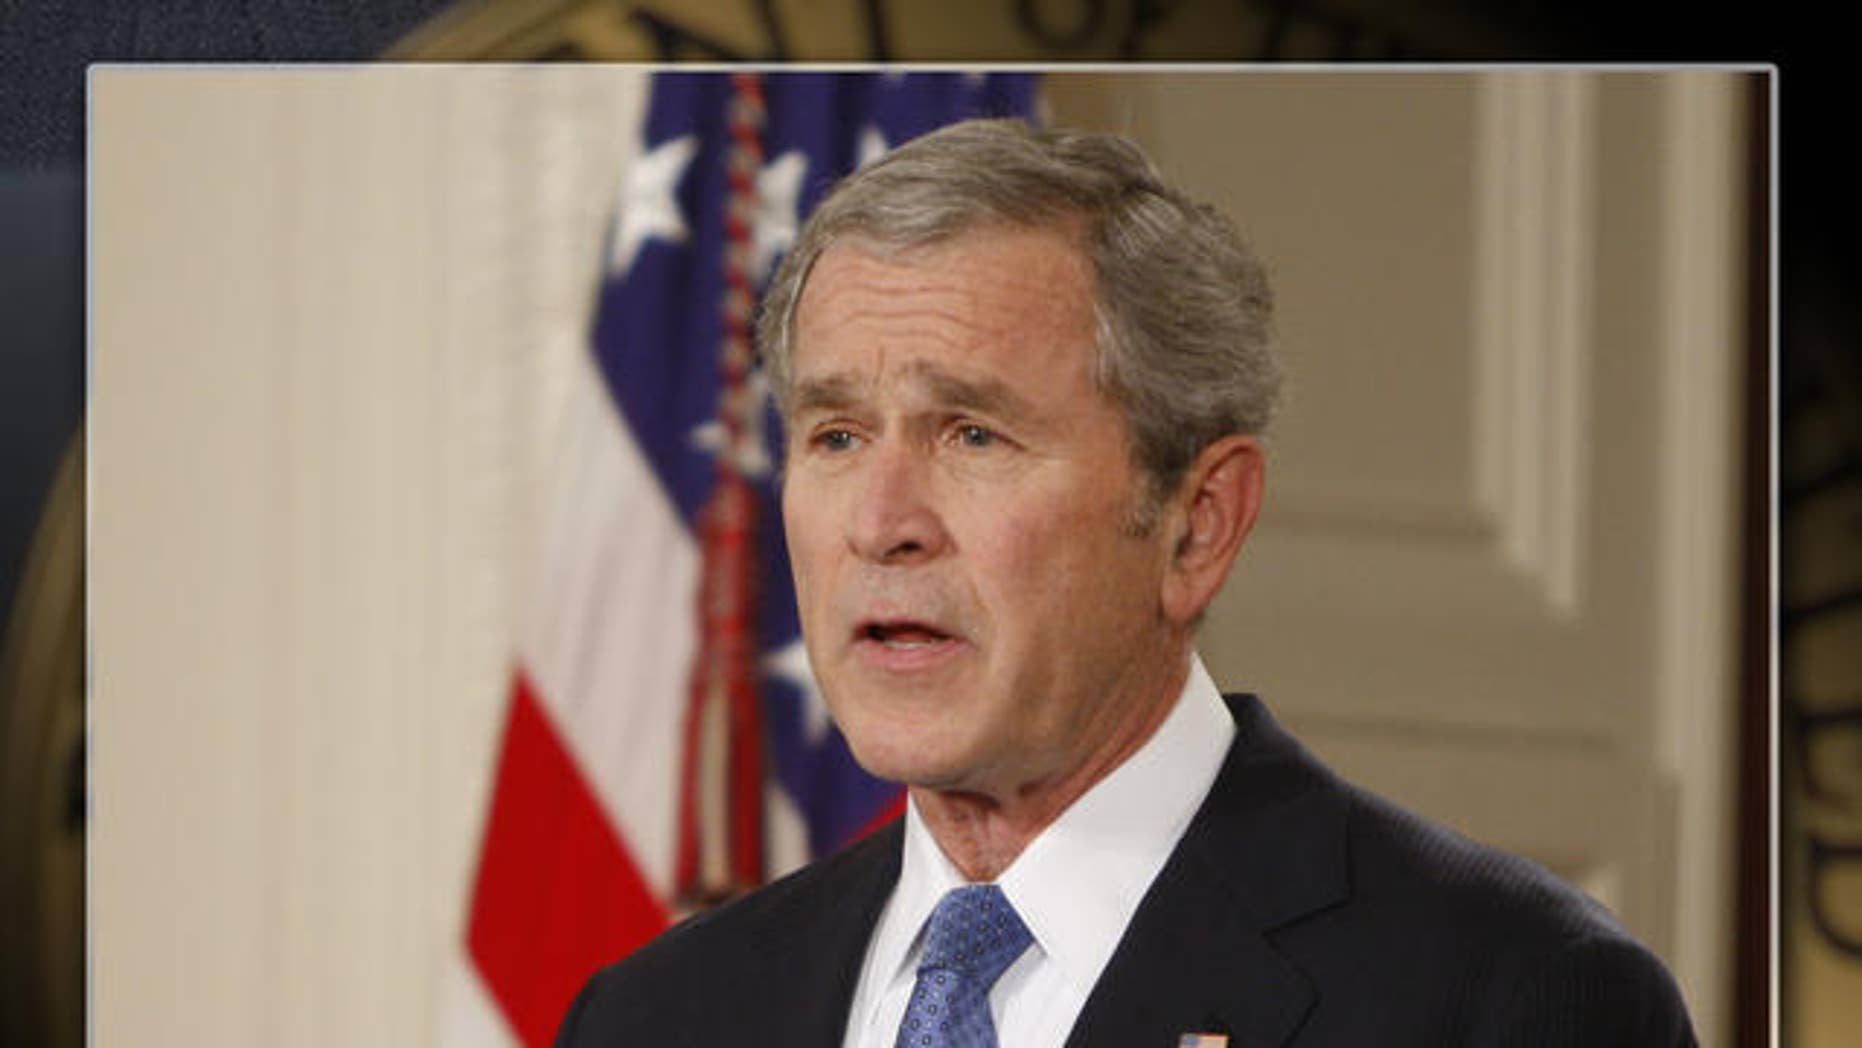 President George W. Bush gives a farewell address to the nation, Thursday, Jan. 15, 2009, in the East Room of the White House in Washington. (AP Photo/Ron Edmonds)